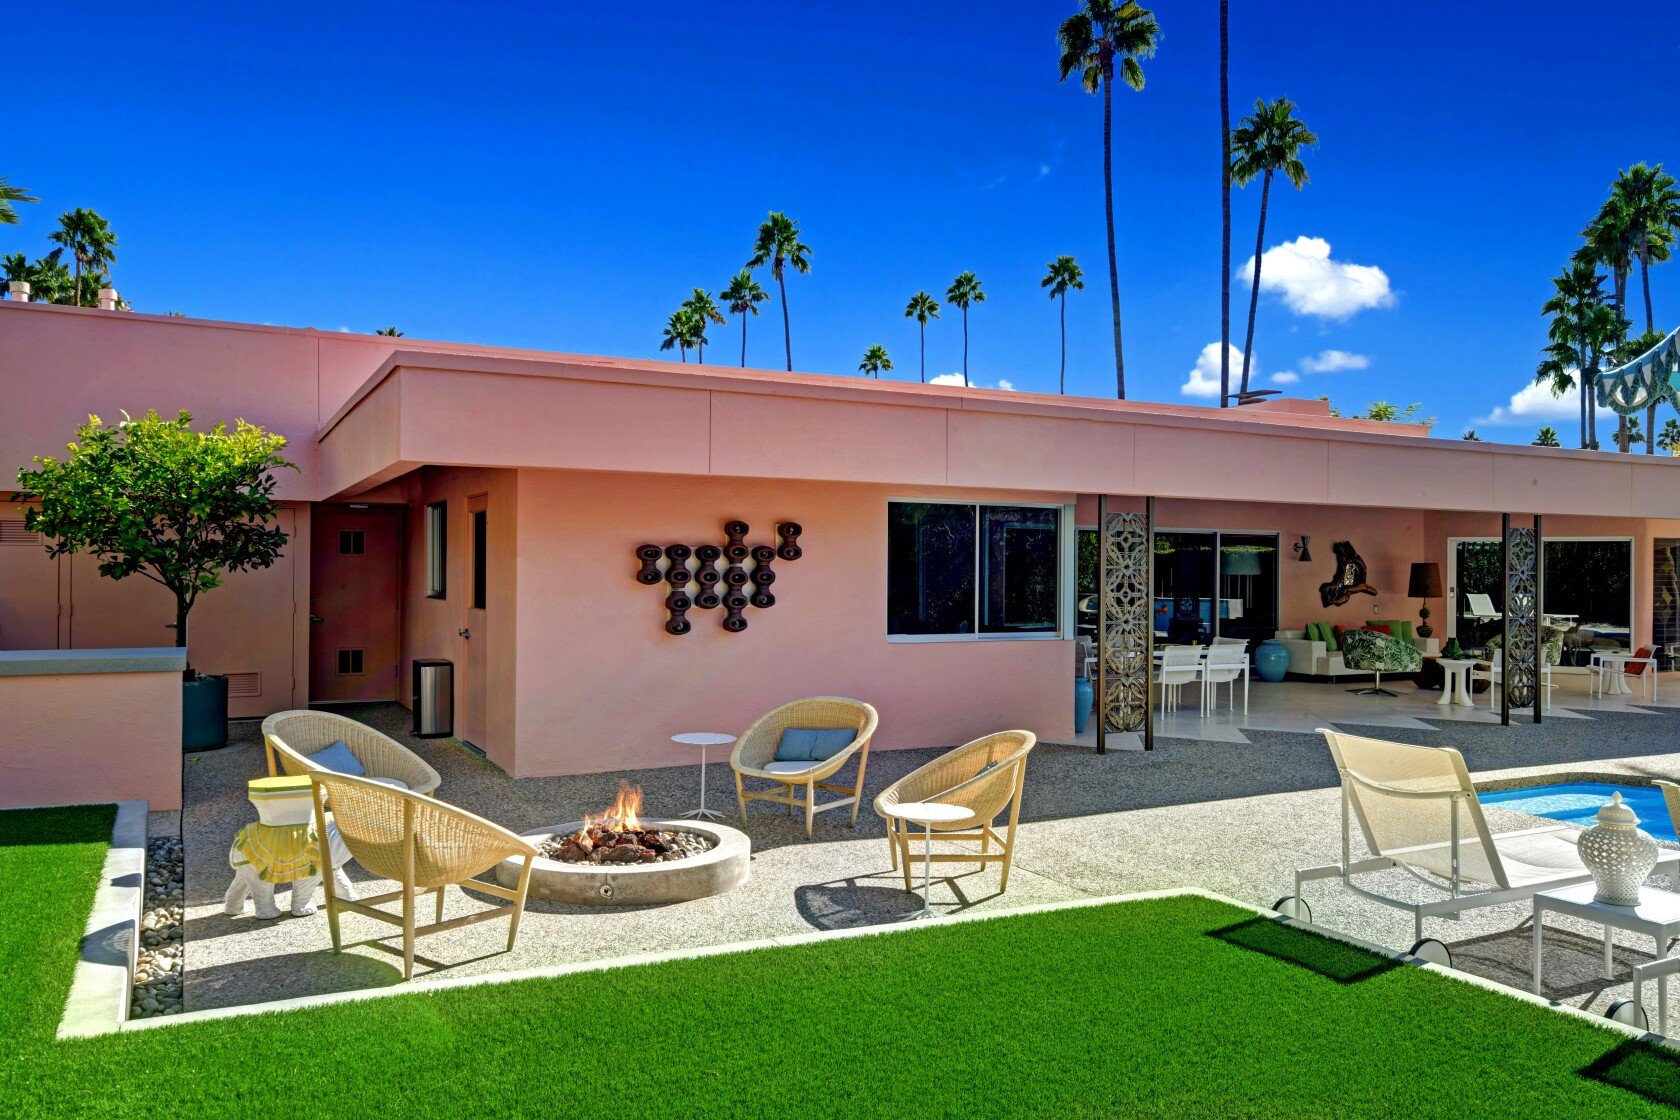 Home of the Week: Pink modernist bliss in Palm Springs